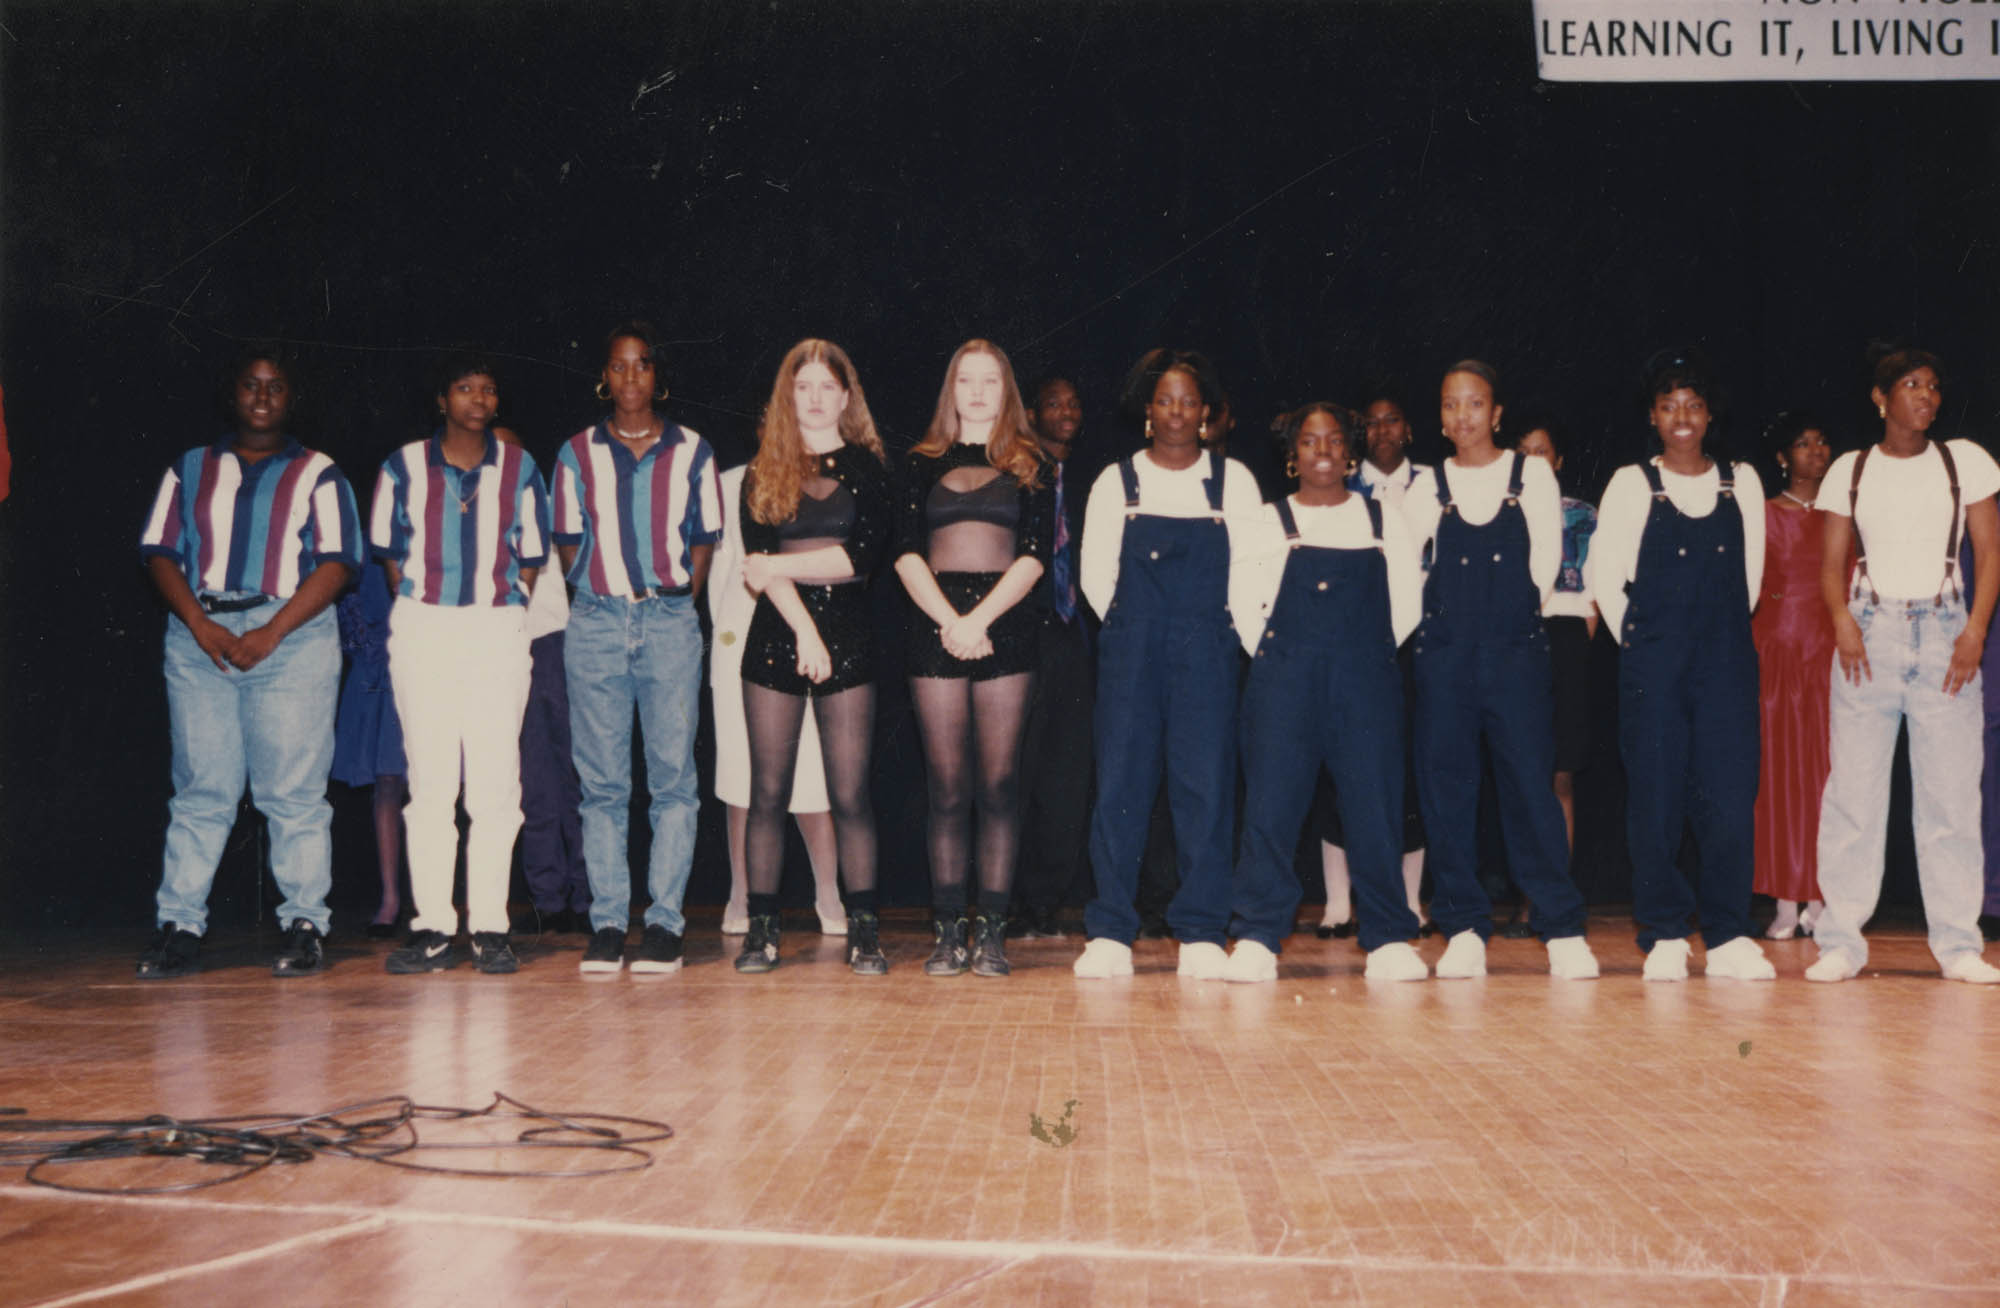 Photograph of Dancers